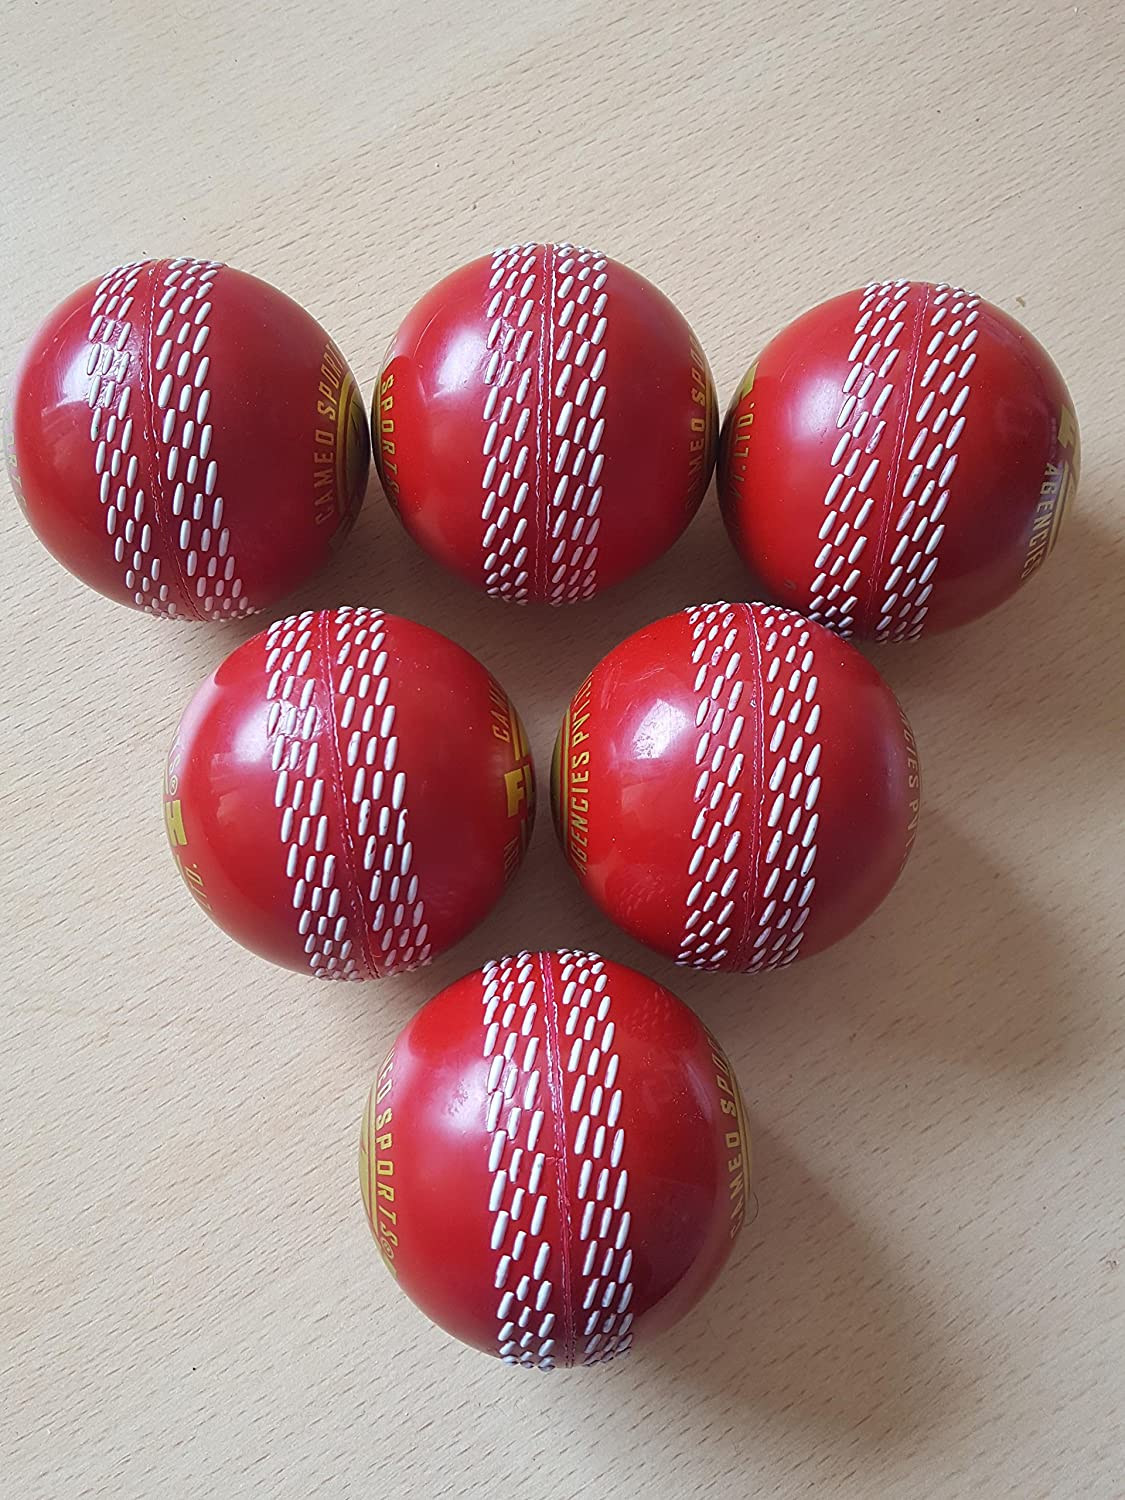 Cricket (HARD Balls)Training Match Playing Practicing Indoor Ball(packof 6) under £3 per ball affordable sport